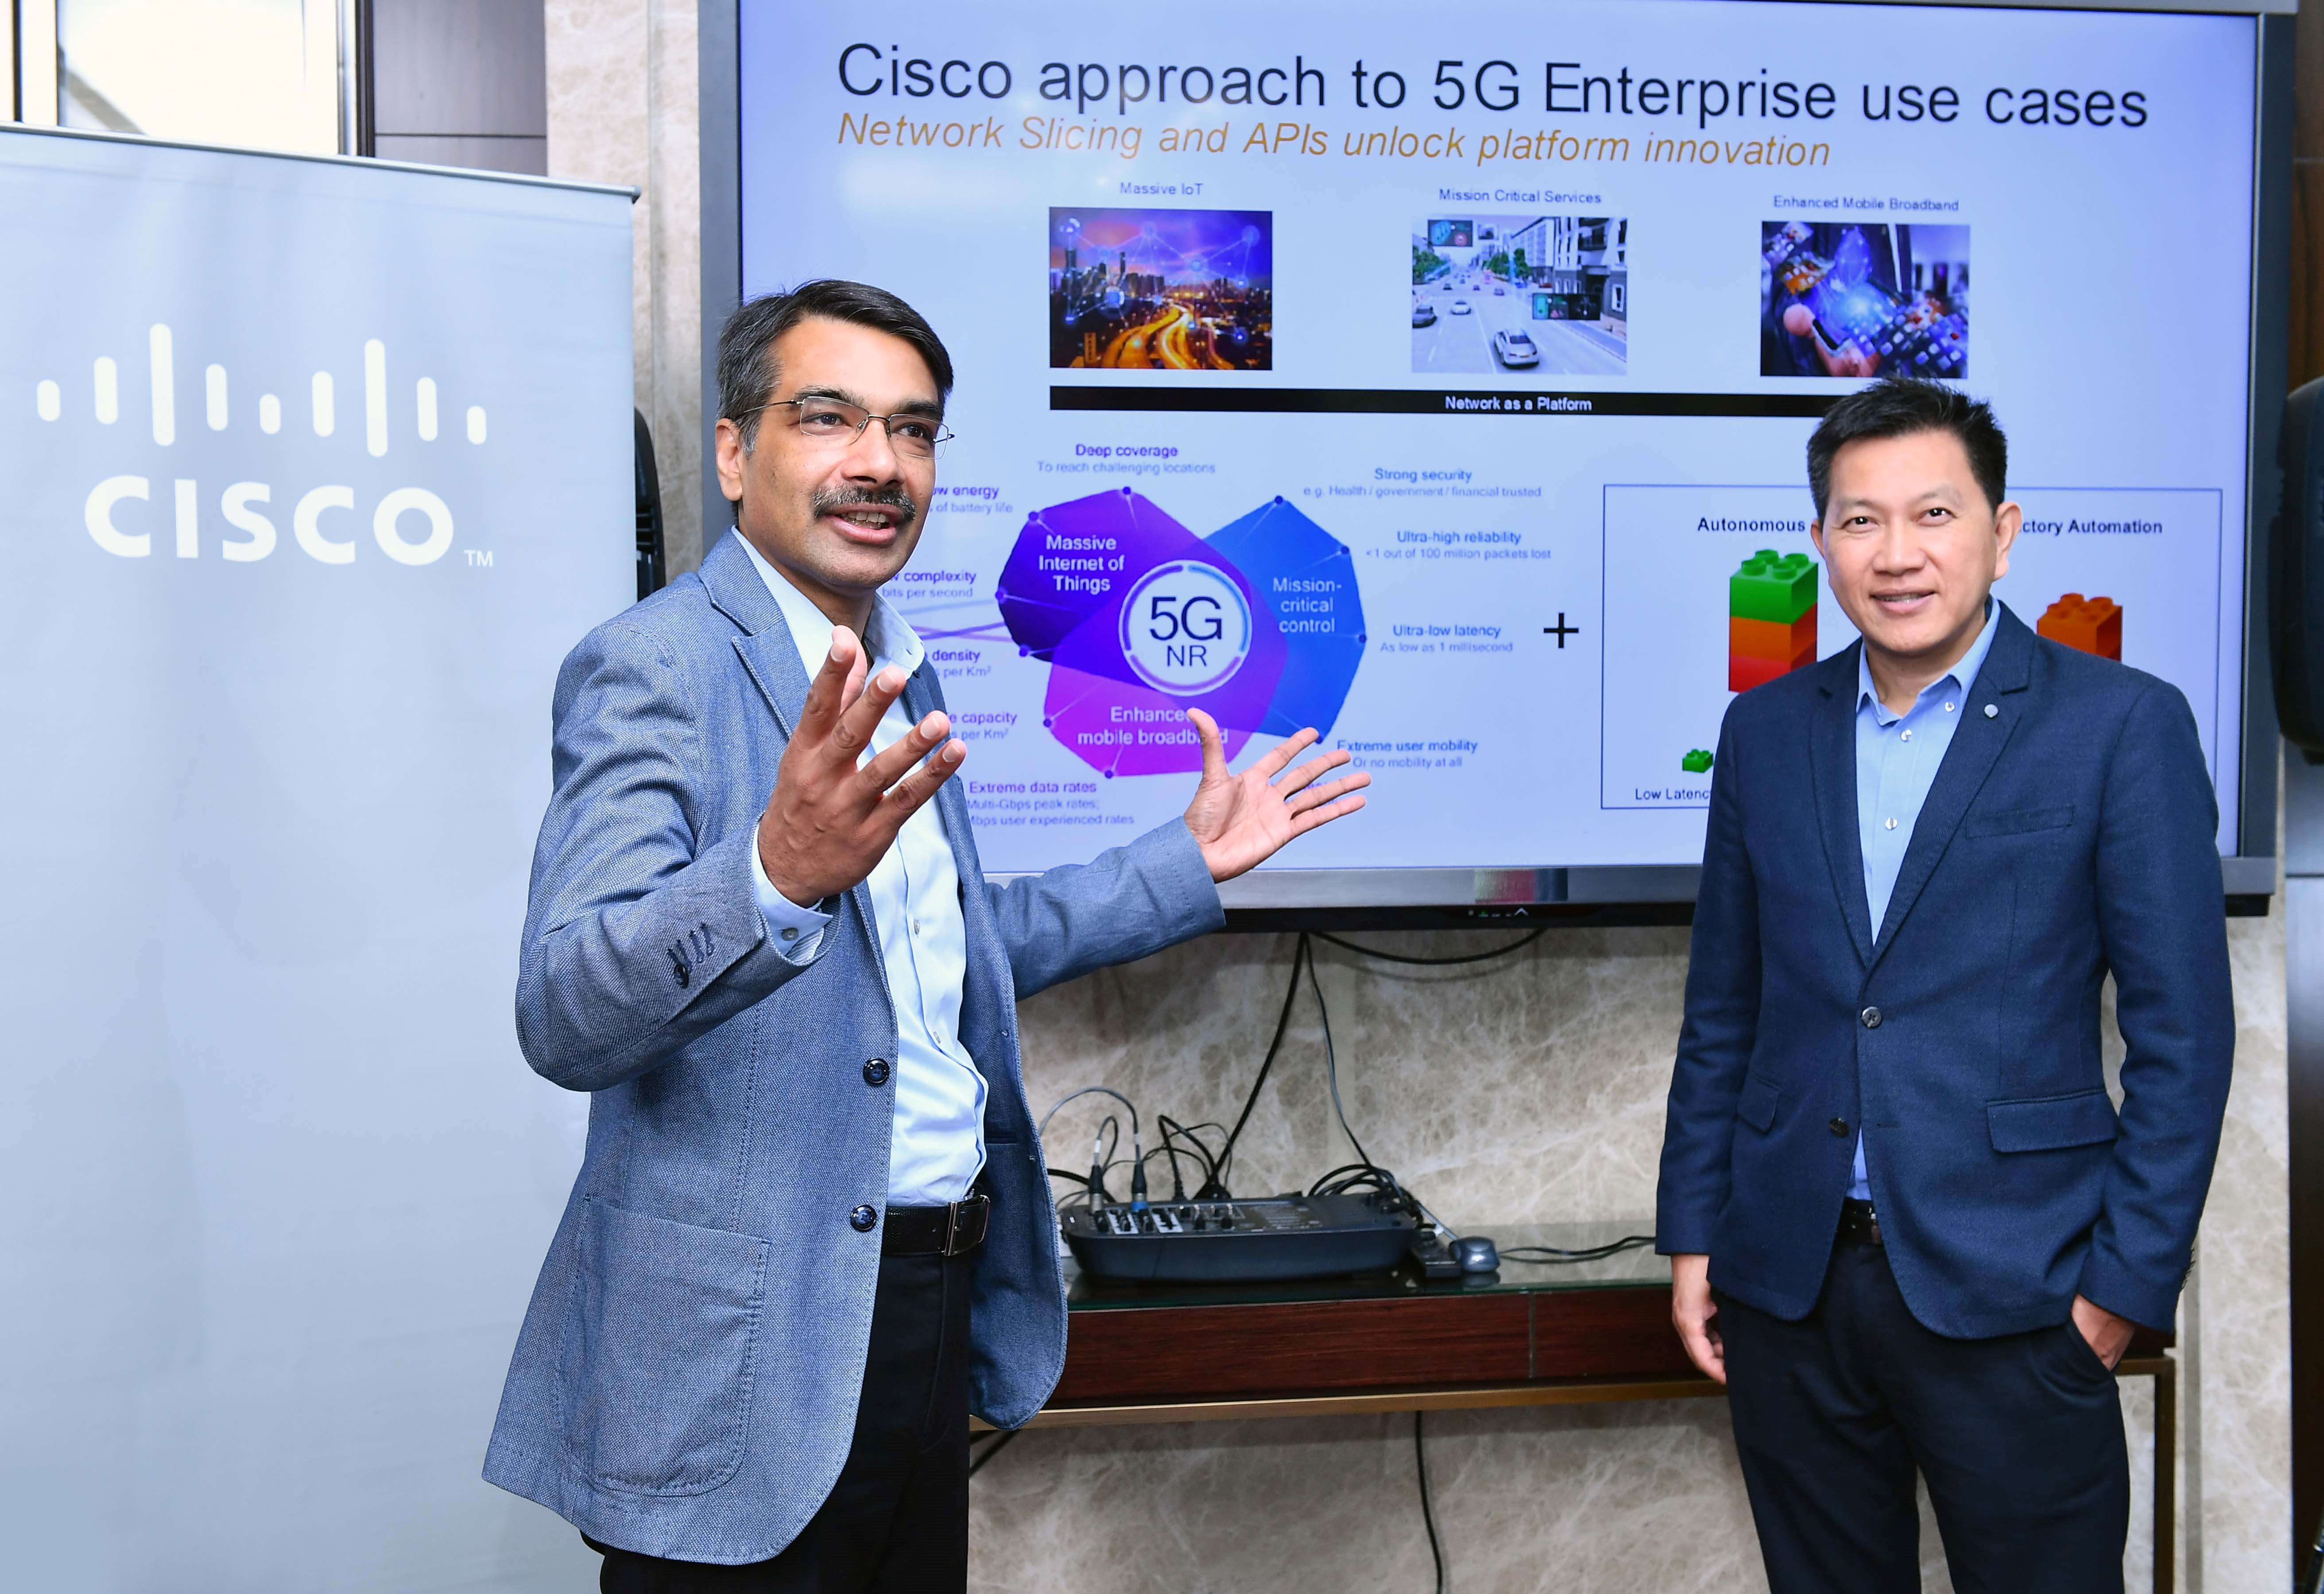 Cisco approach to 5G in asean